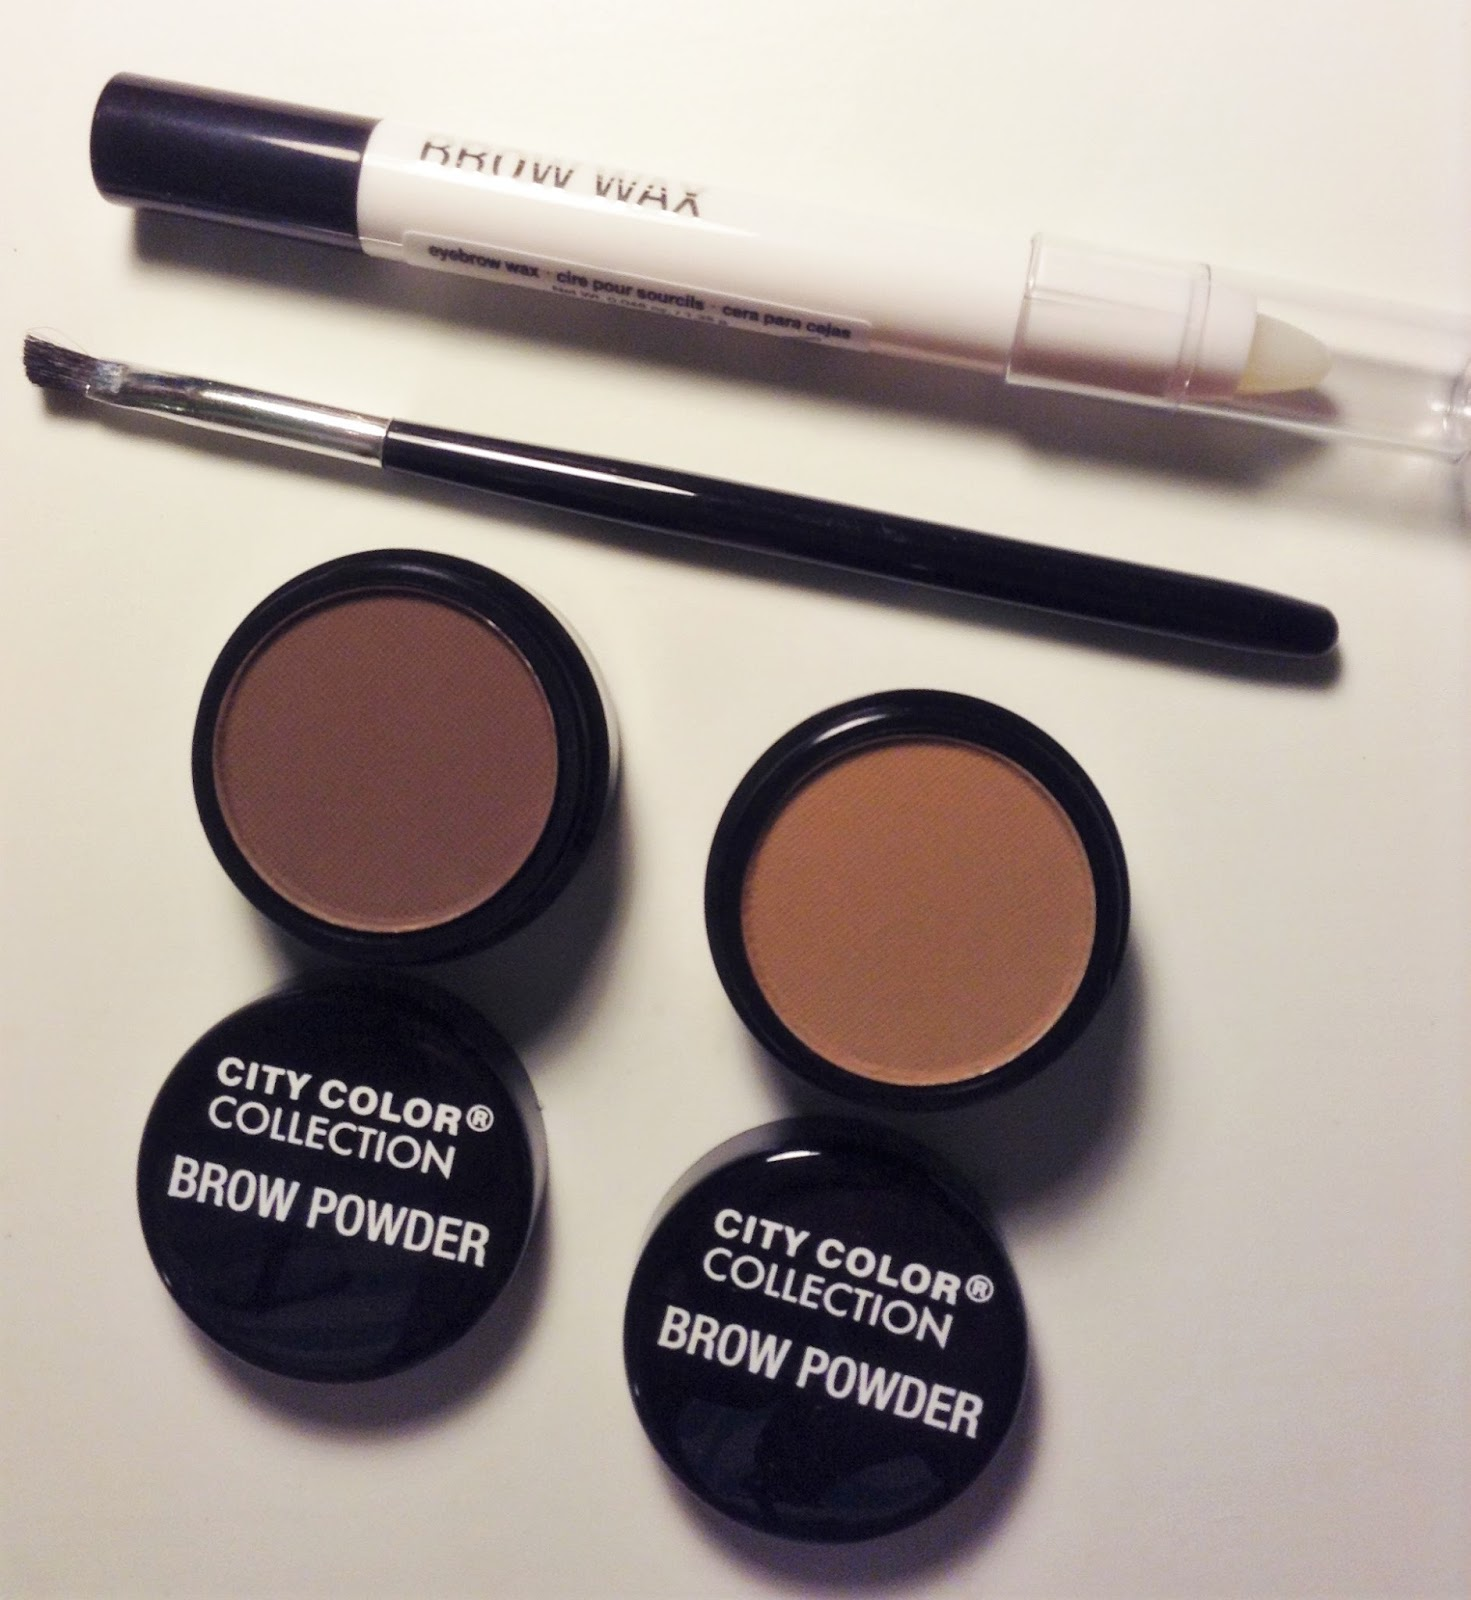 Shopping Haul 2 Beauty Fashion More The Aesthetic Edge City Color Contour Palette I Really Like This Set Have Used Both Of Powders Think Each Works For Me And They Held Up All Day